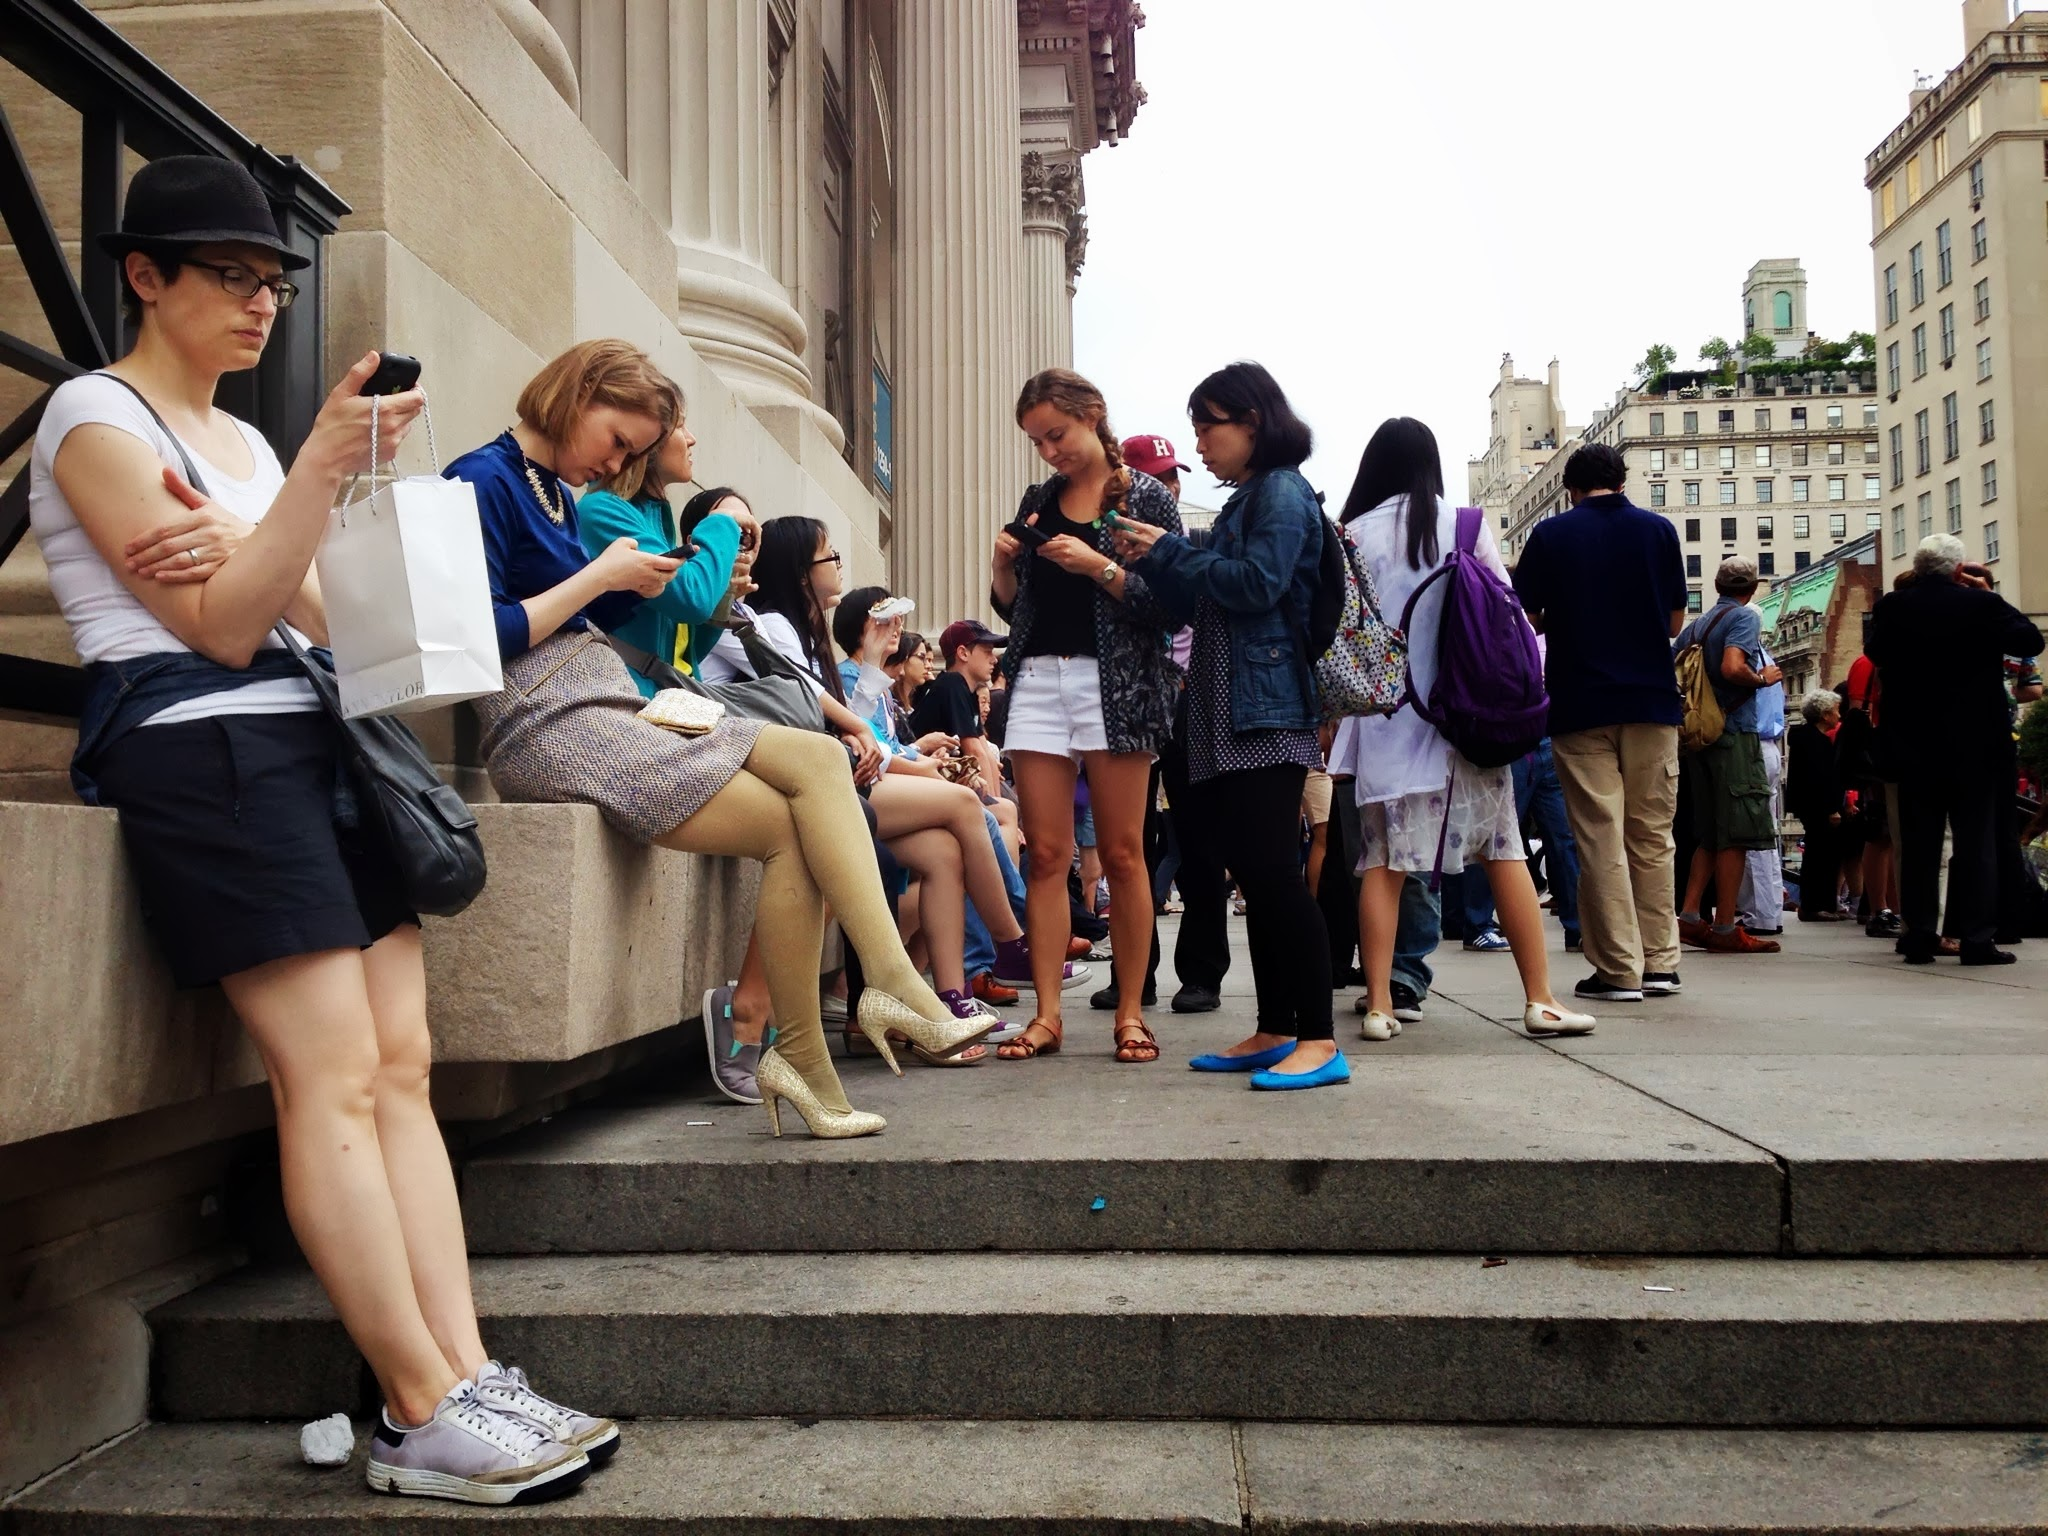 People on the steps of the MET in NYC by Simone Smith